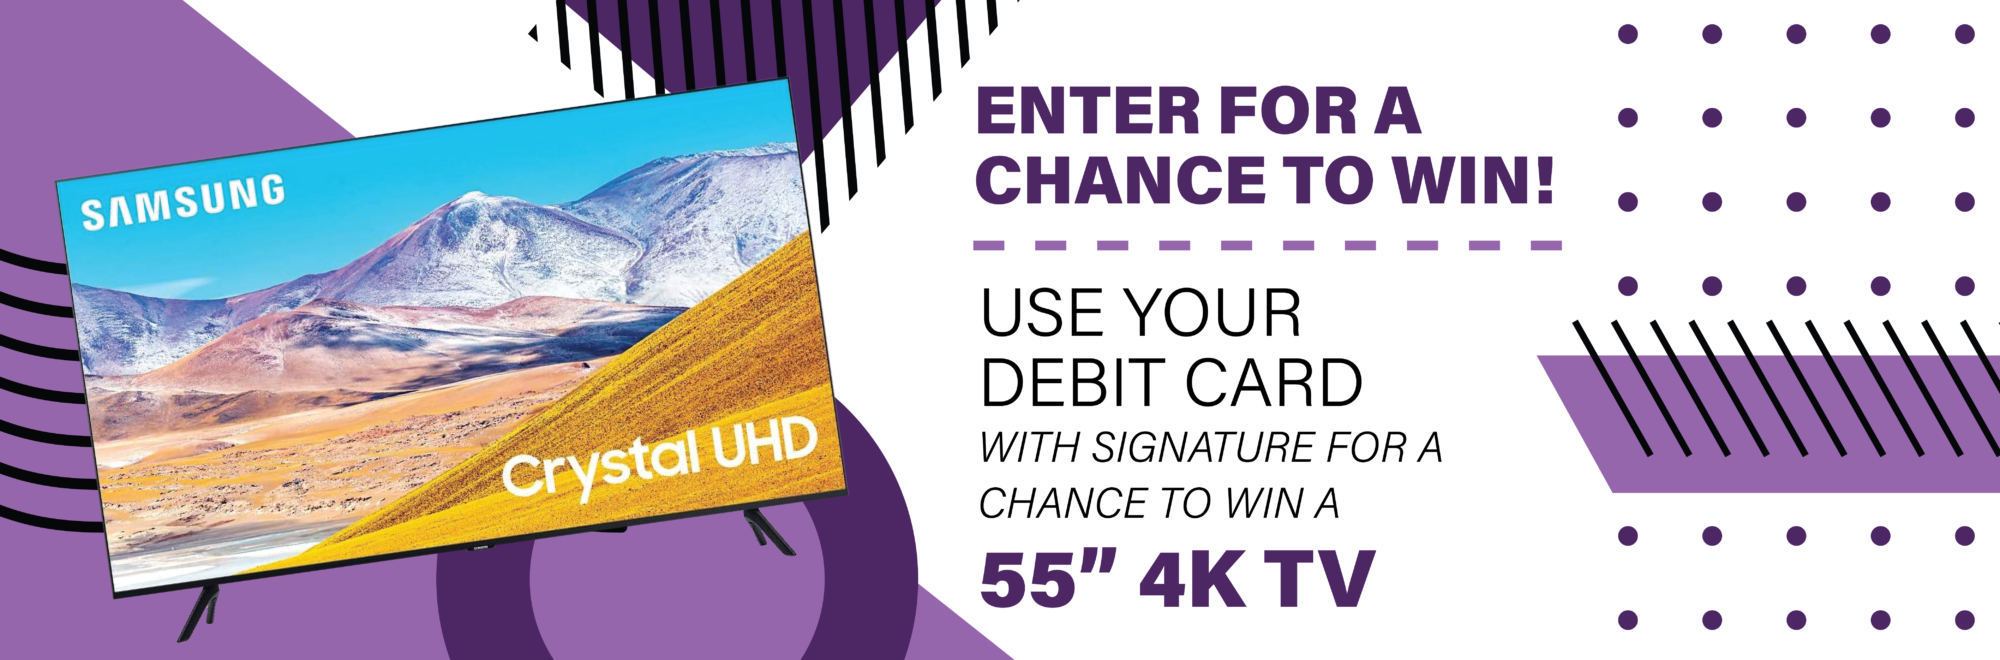 """Enter for a chance to win a 55"""" 4K TV by using your debit card as a signature transaction."""